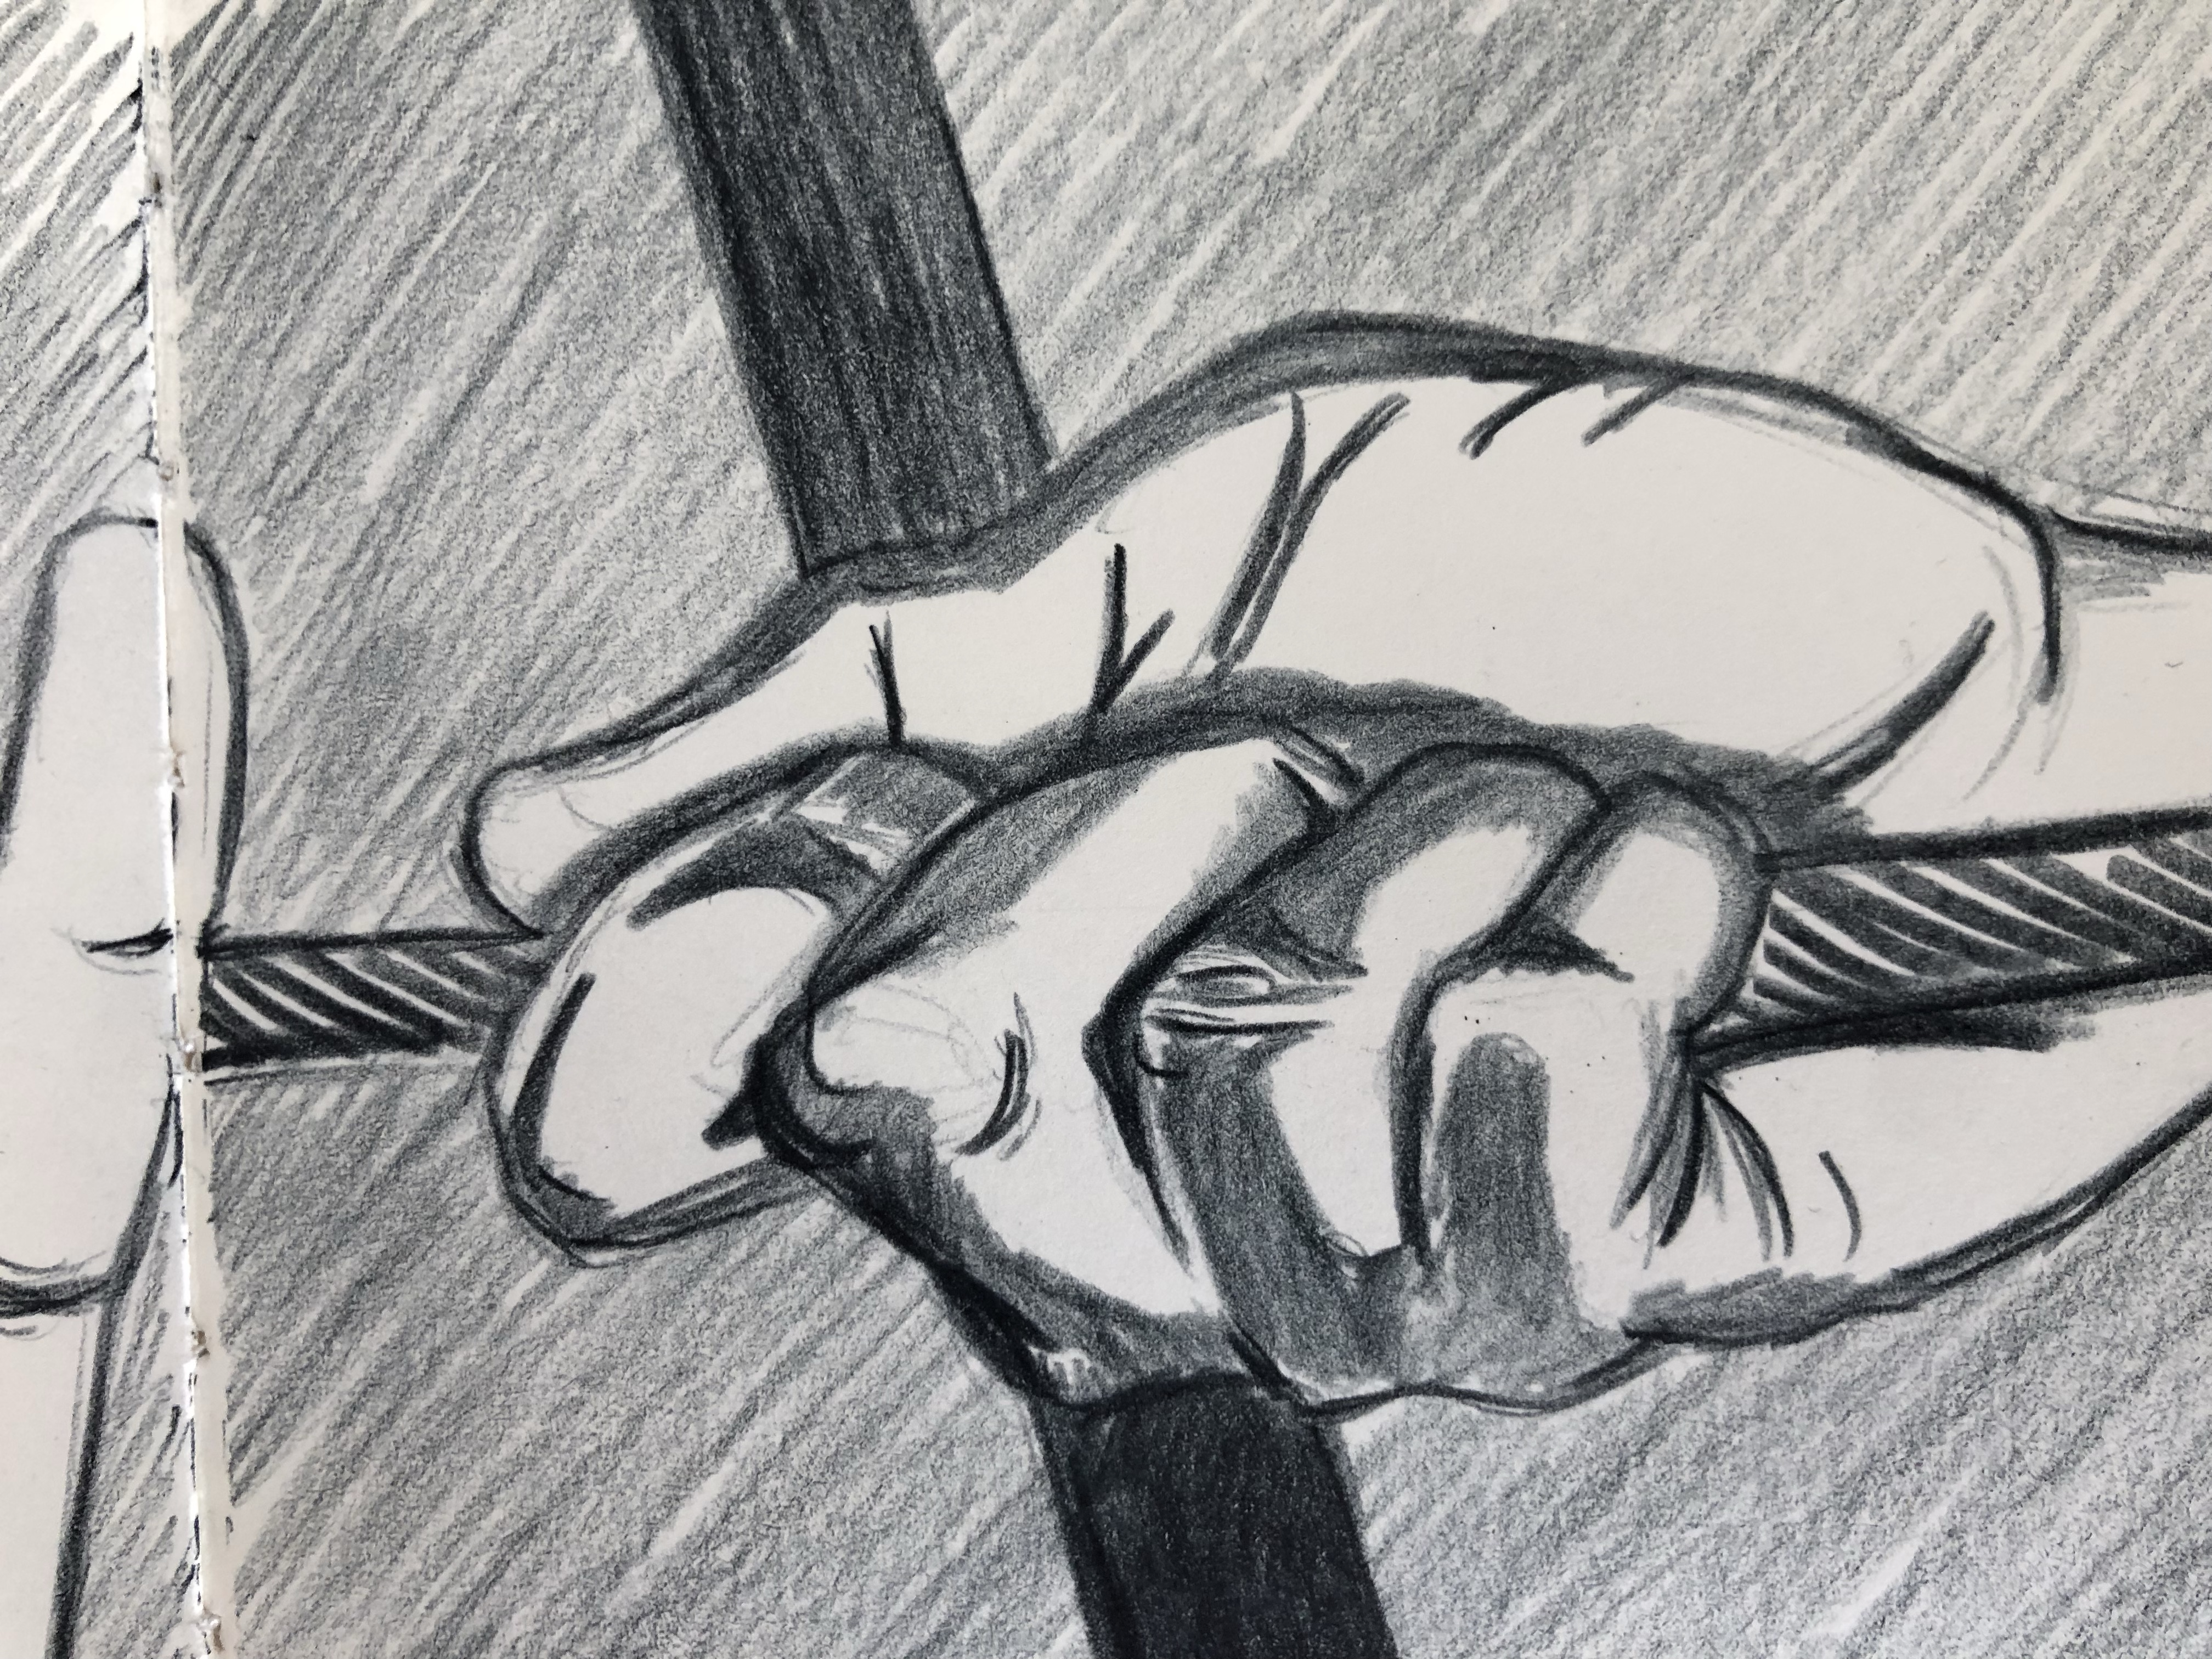 Drawing of a hand grabbing a rope.